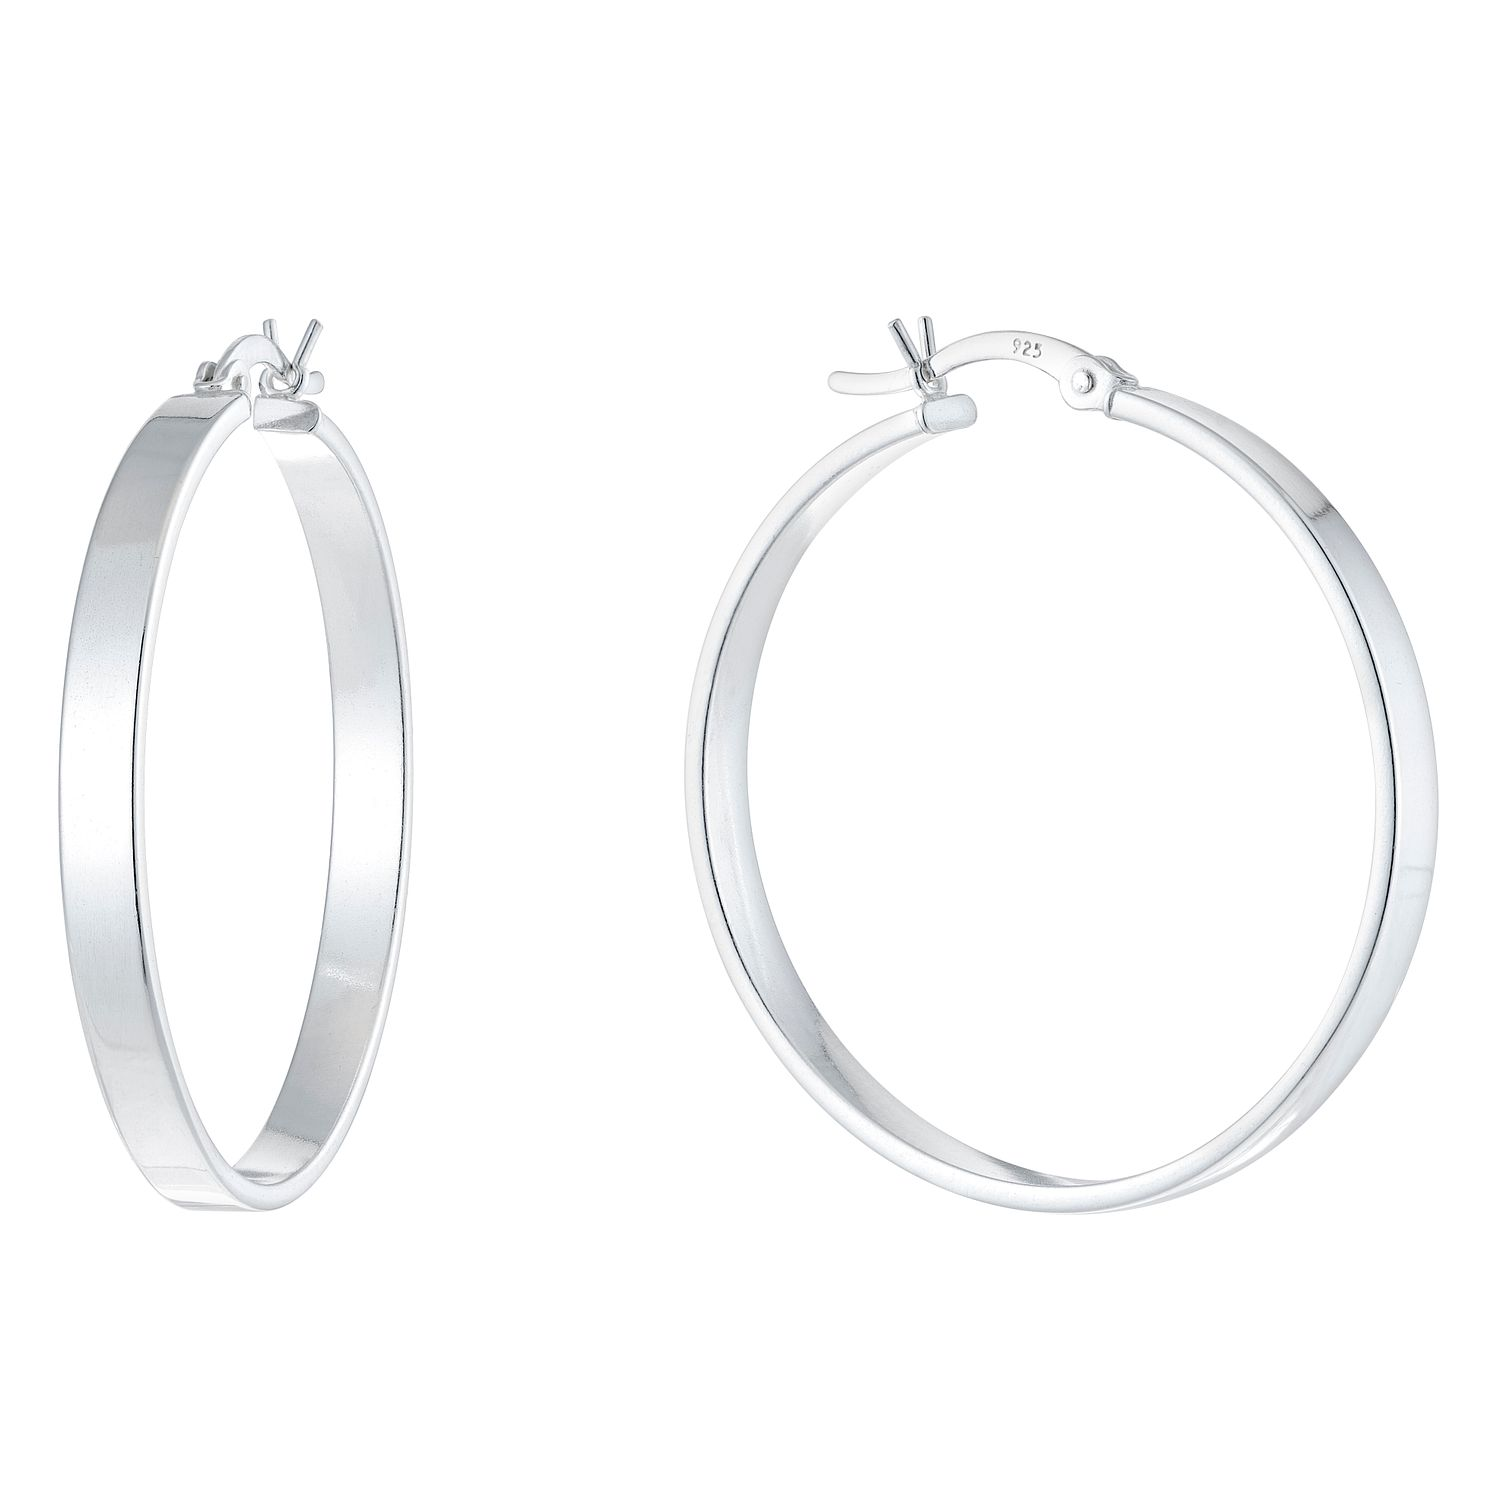 Ladies' Silver 32mm Wide Hoop Earrings - Product number 9541683